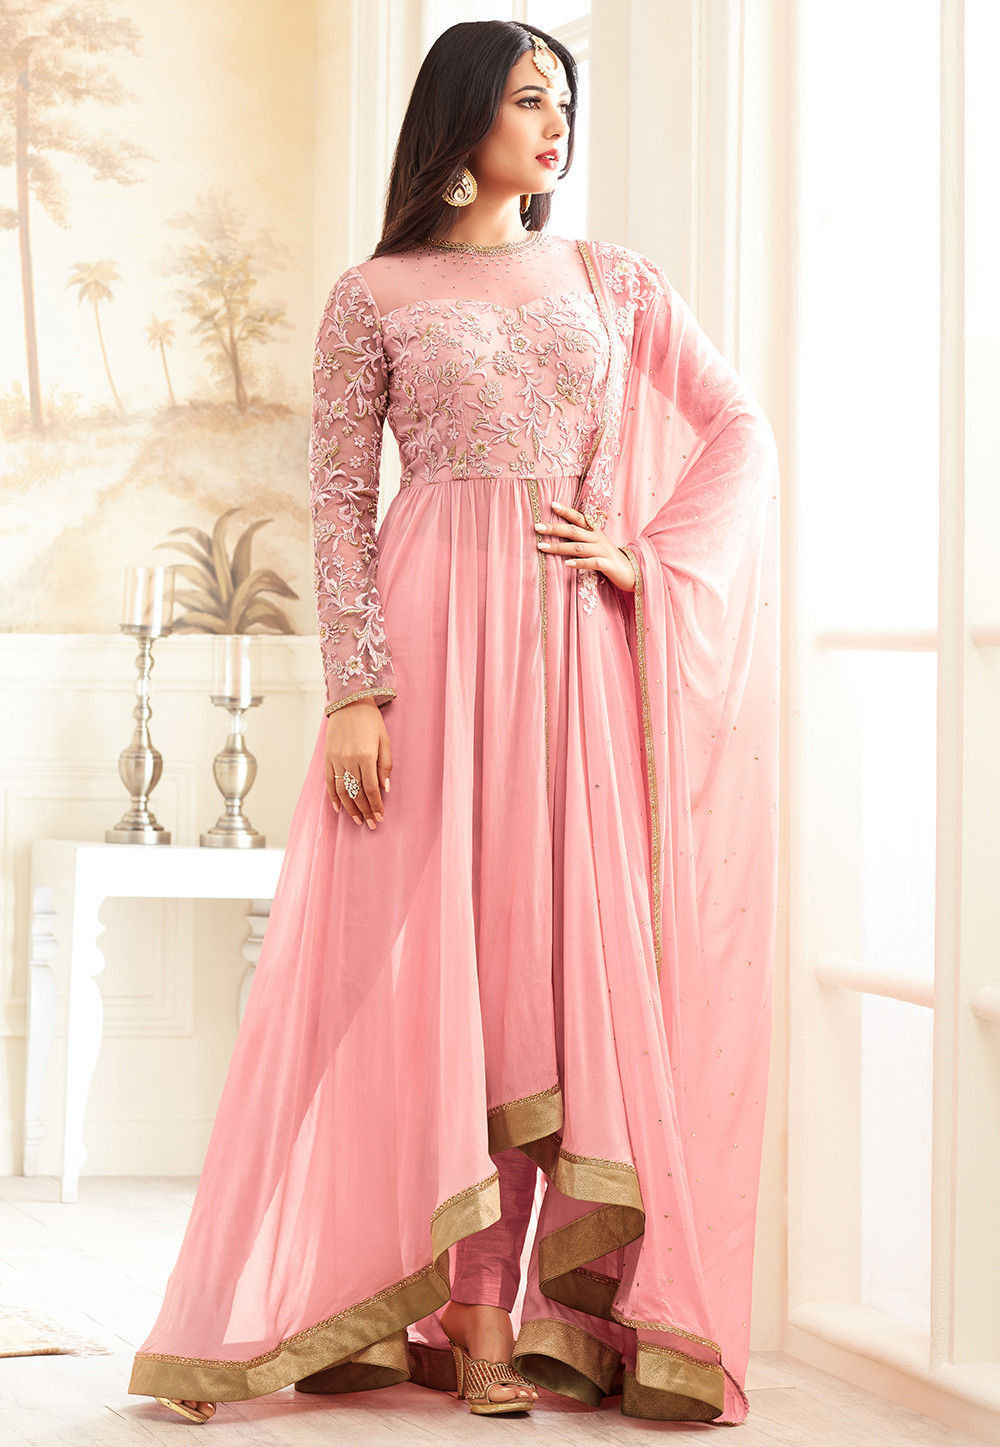 a576c40e19 ... Salwar Kameez; Embroidered Georgette Abaya Style Suit in Light Peach.  Zoom